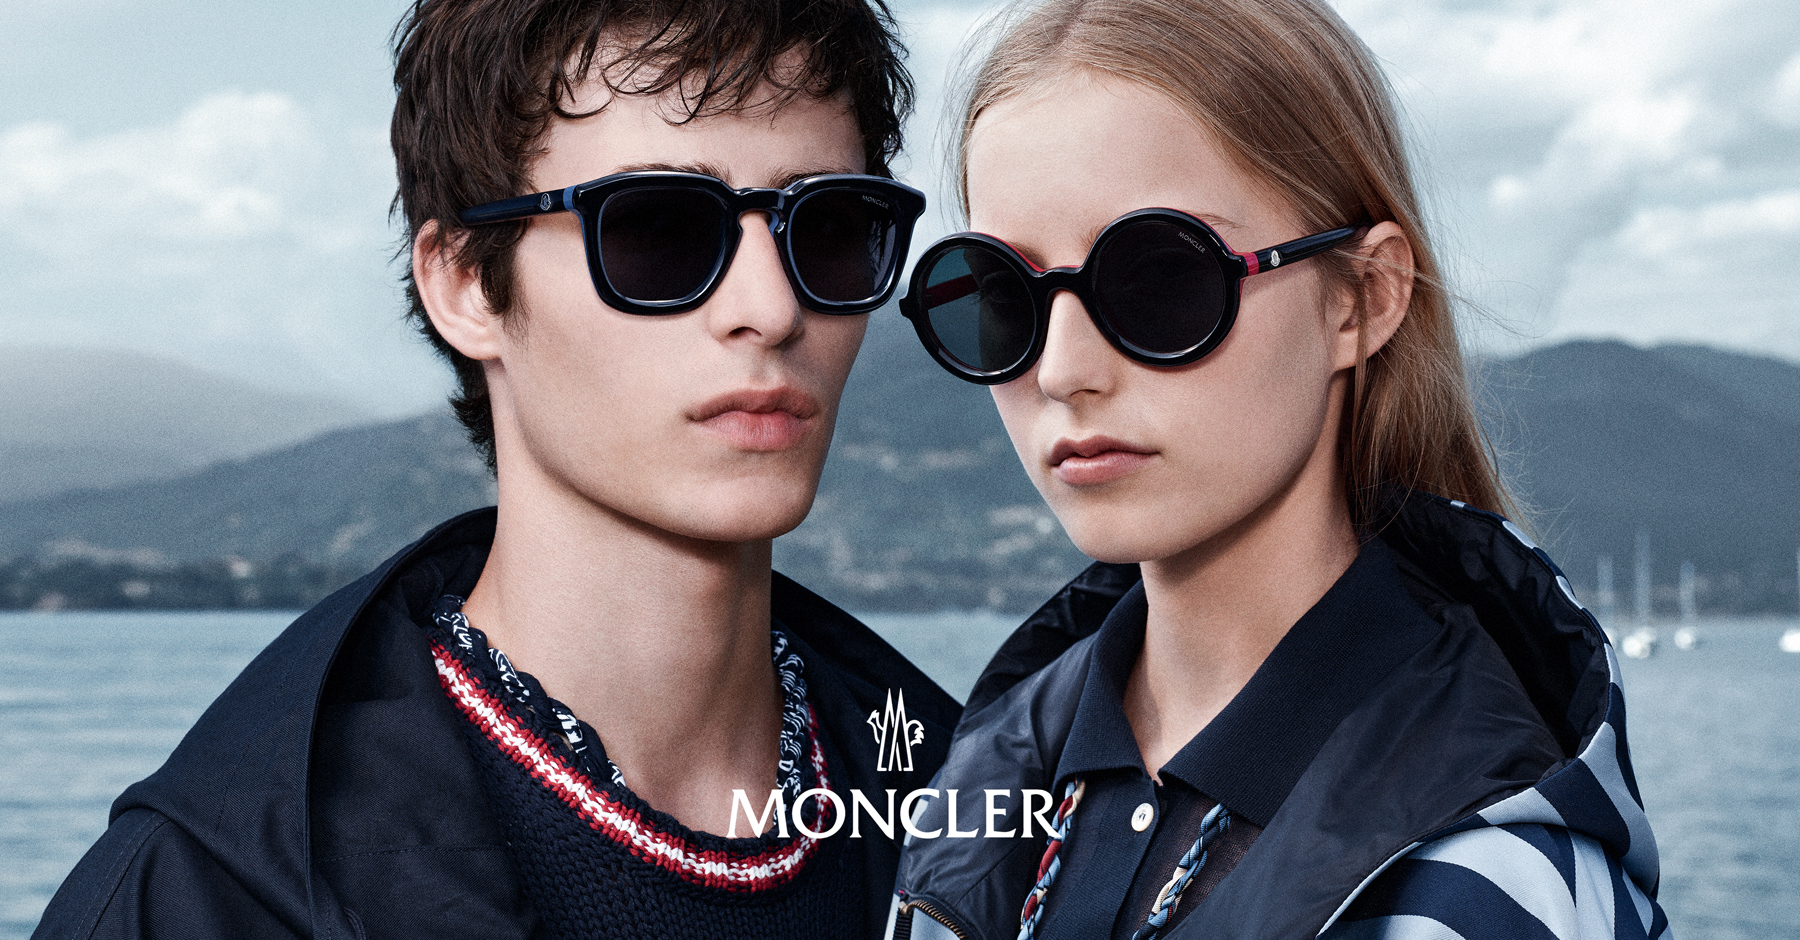 EXT_MONCLER LUNETTES_FW16_SUNGLASSES_COMBINED_NEW OCCHIALE_V2.jpg